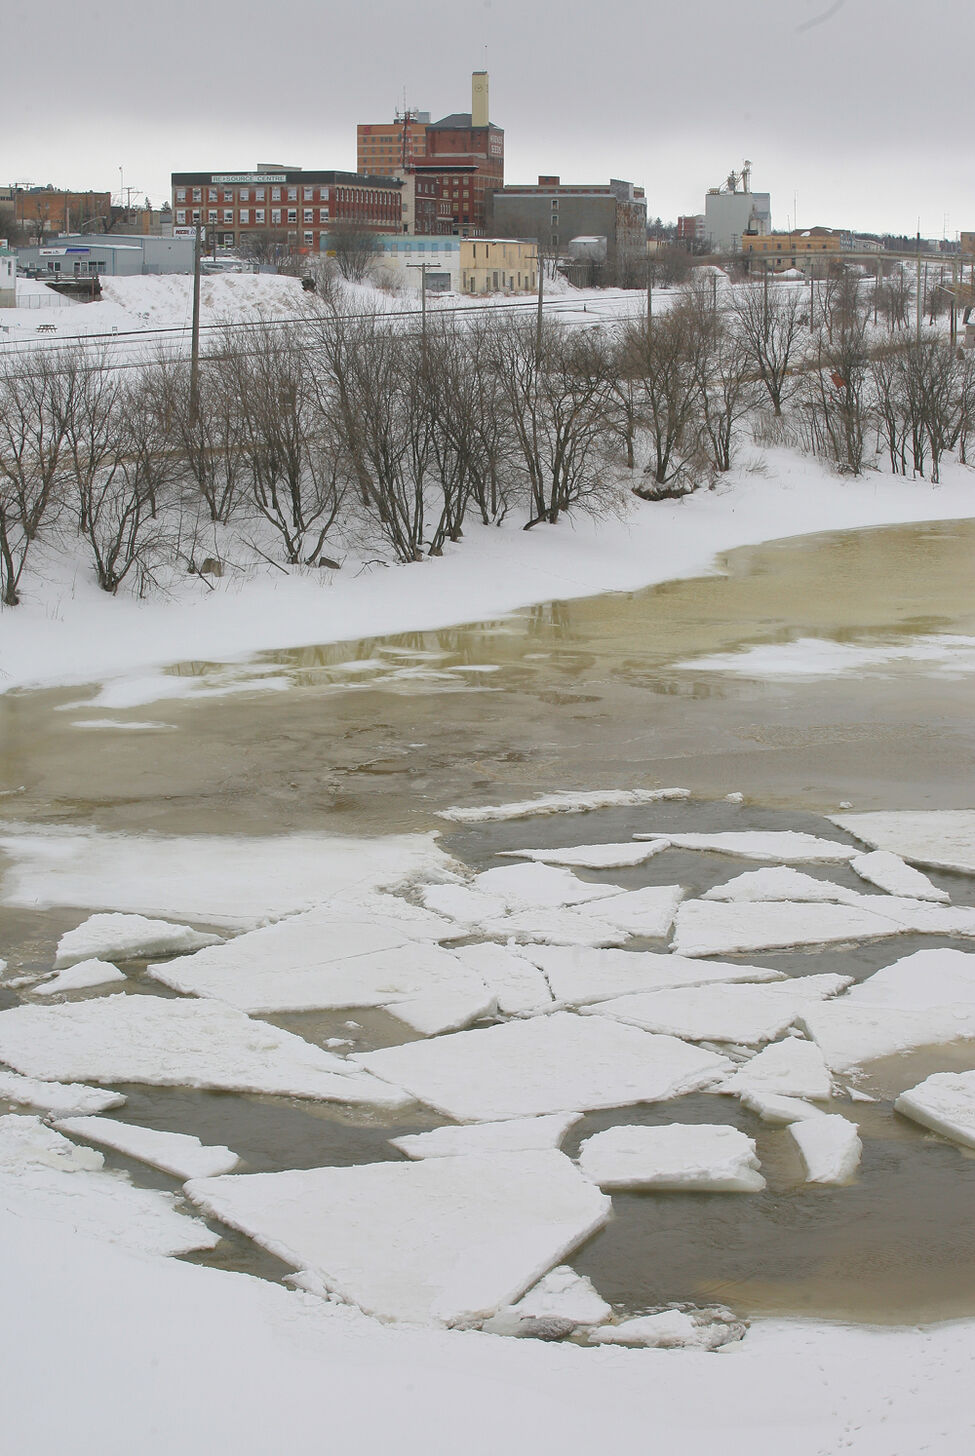 Ice on the Assiniboine River had began to break-up near the Dinsdale Dam by March 21.